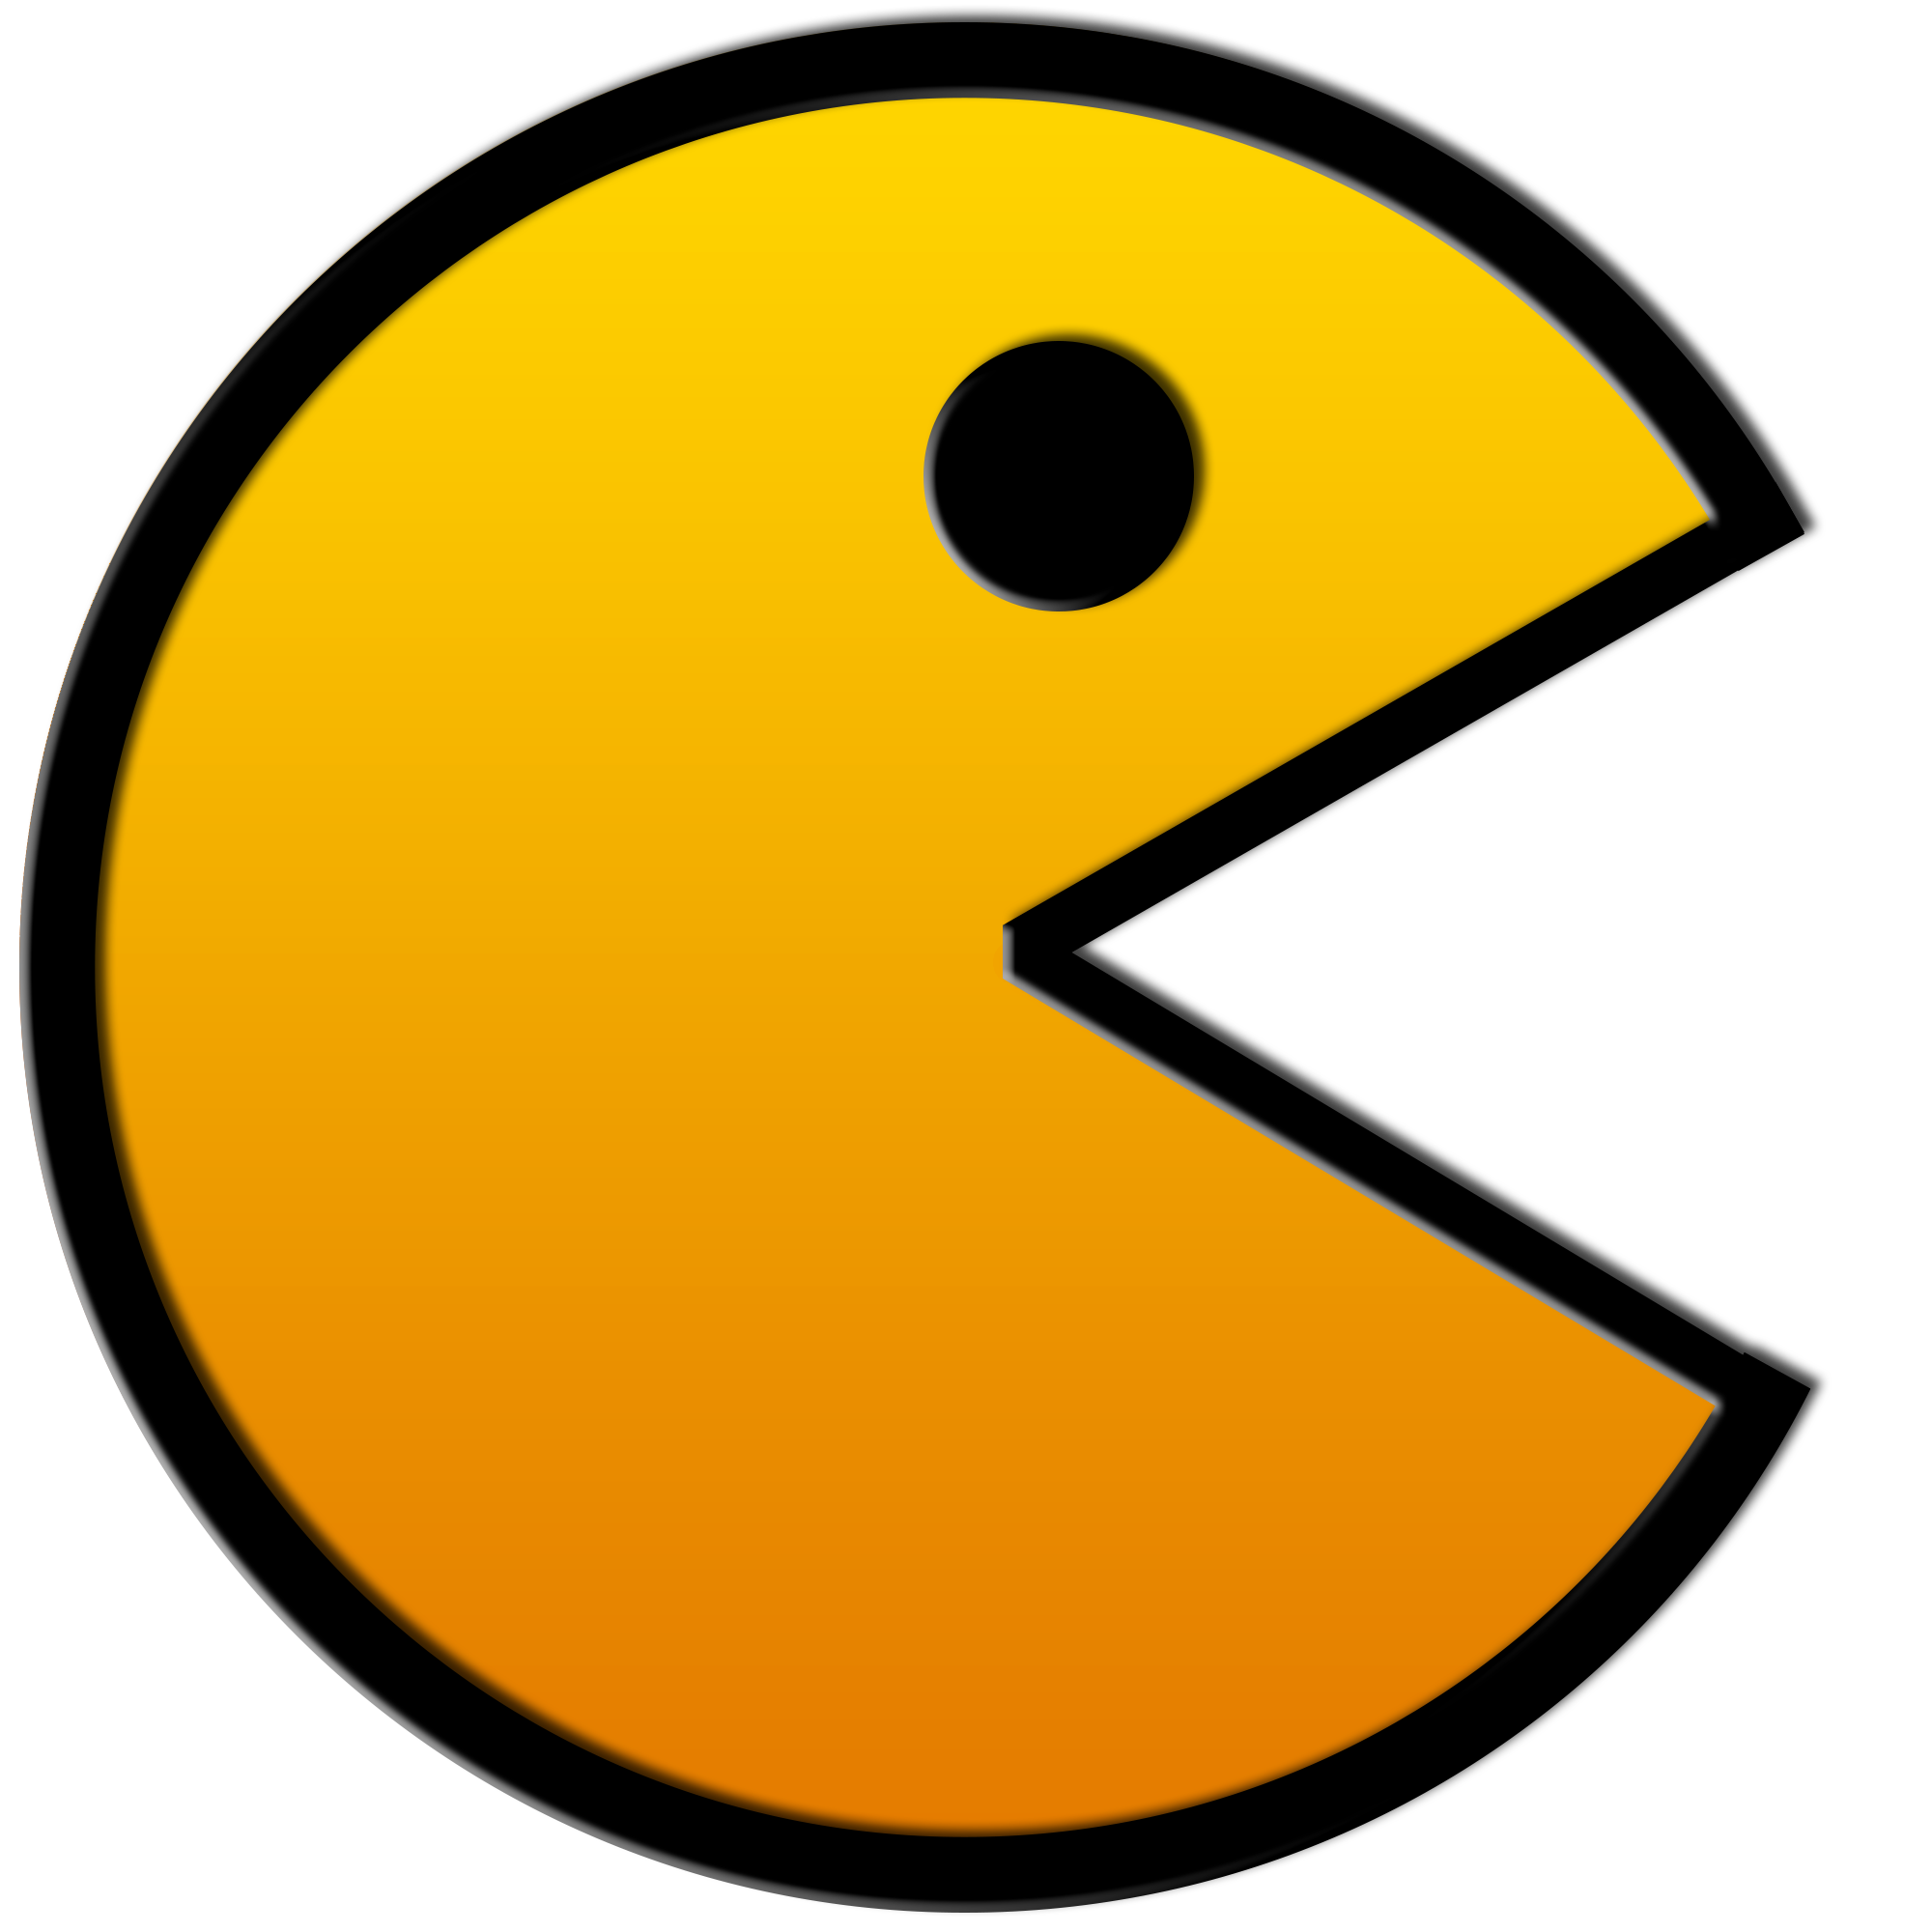 images of pac man pac man wallpapers high quality download free 5484